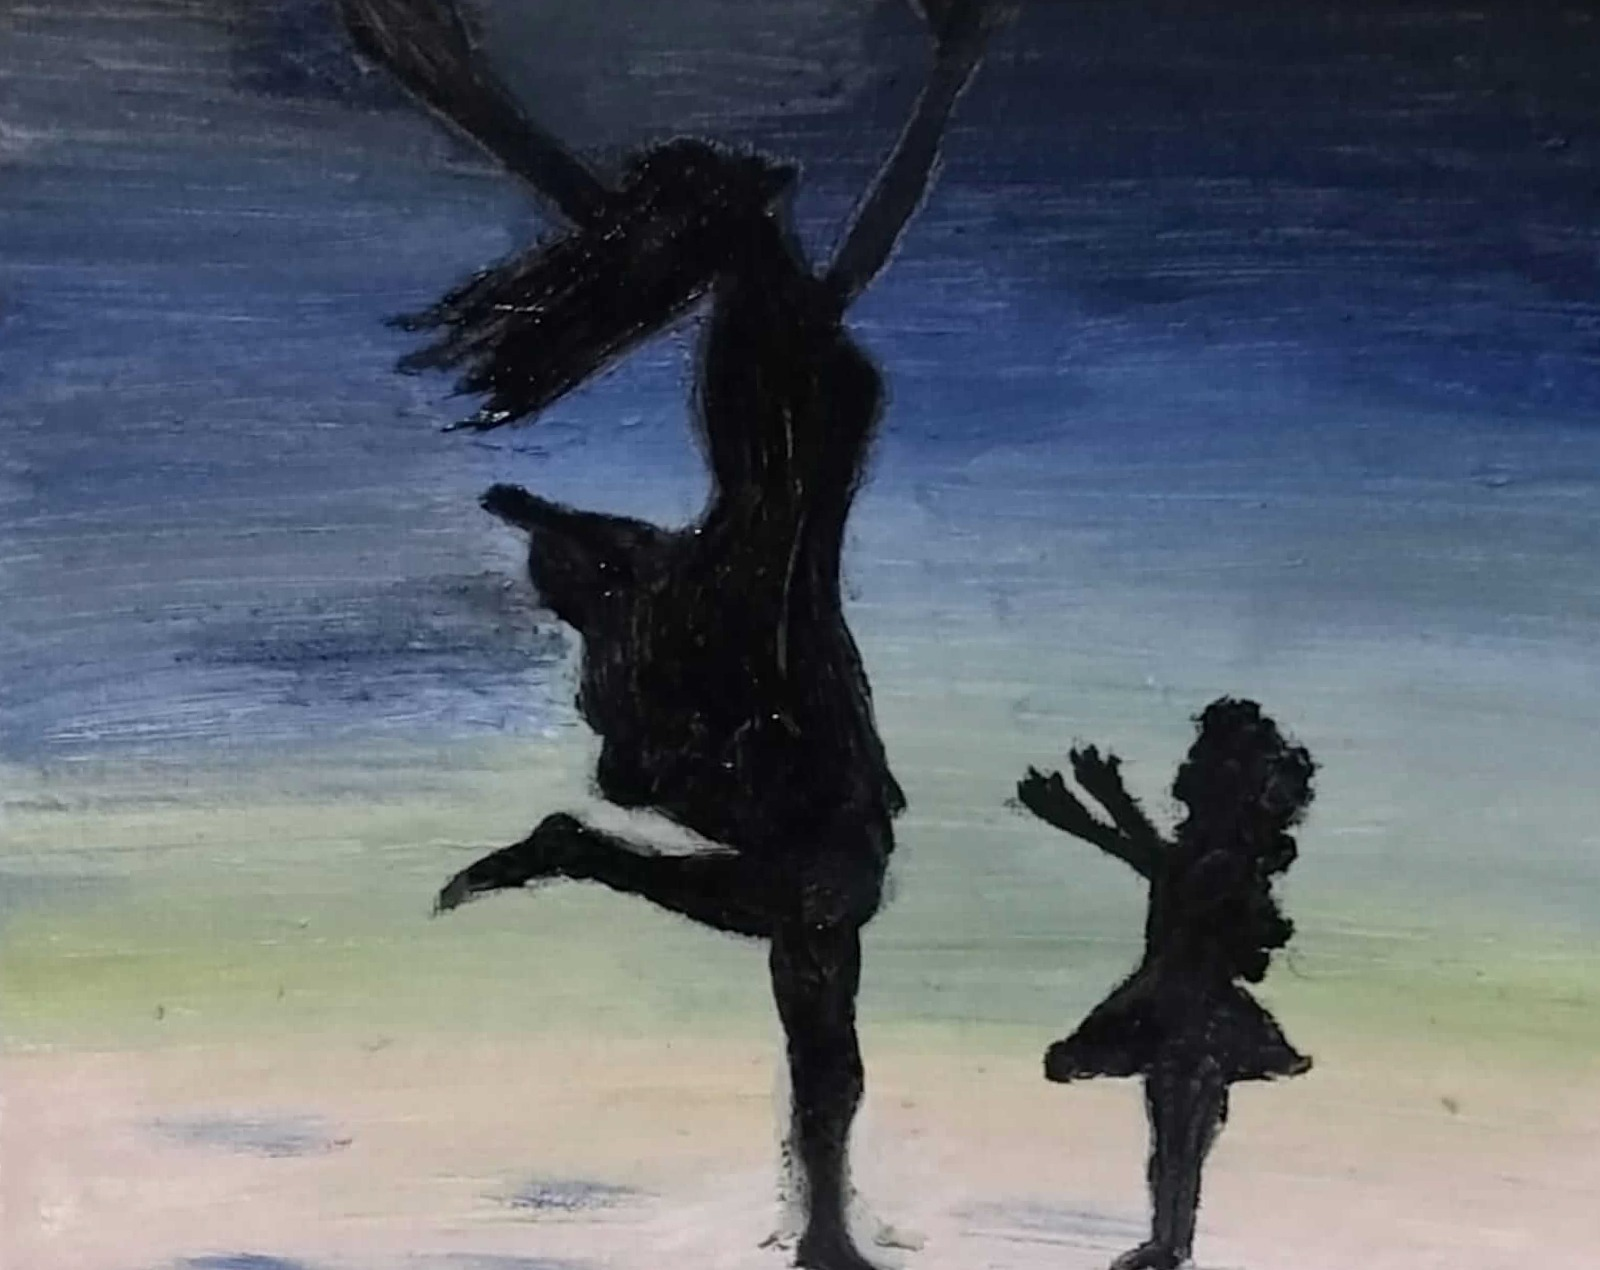 15: Dancing with my Daughter, by Mansoureh (Mahsah) Koohnab. Mahsah had to leave her 6-year old daughter behind in Iran when she fled. Painting provides her only temporary relief from this intolerable pain.